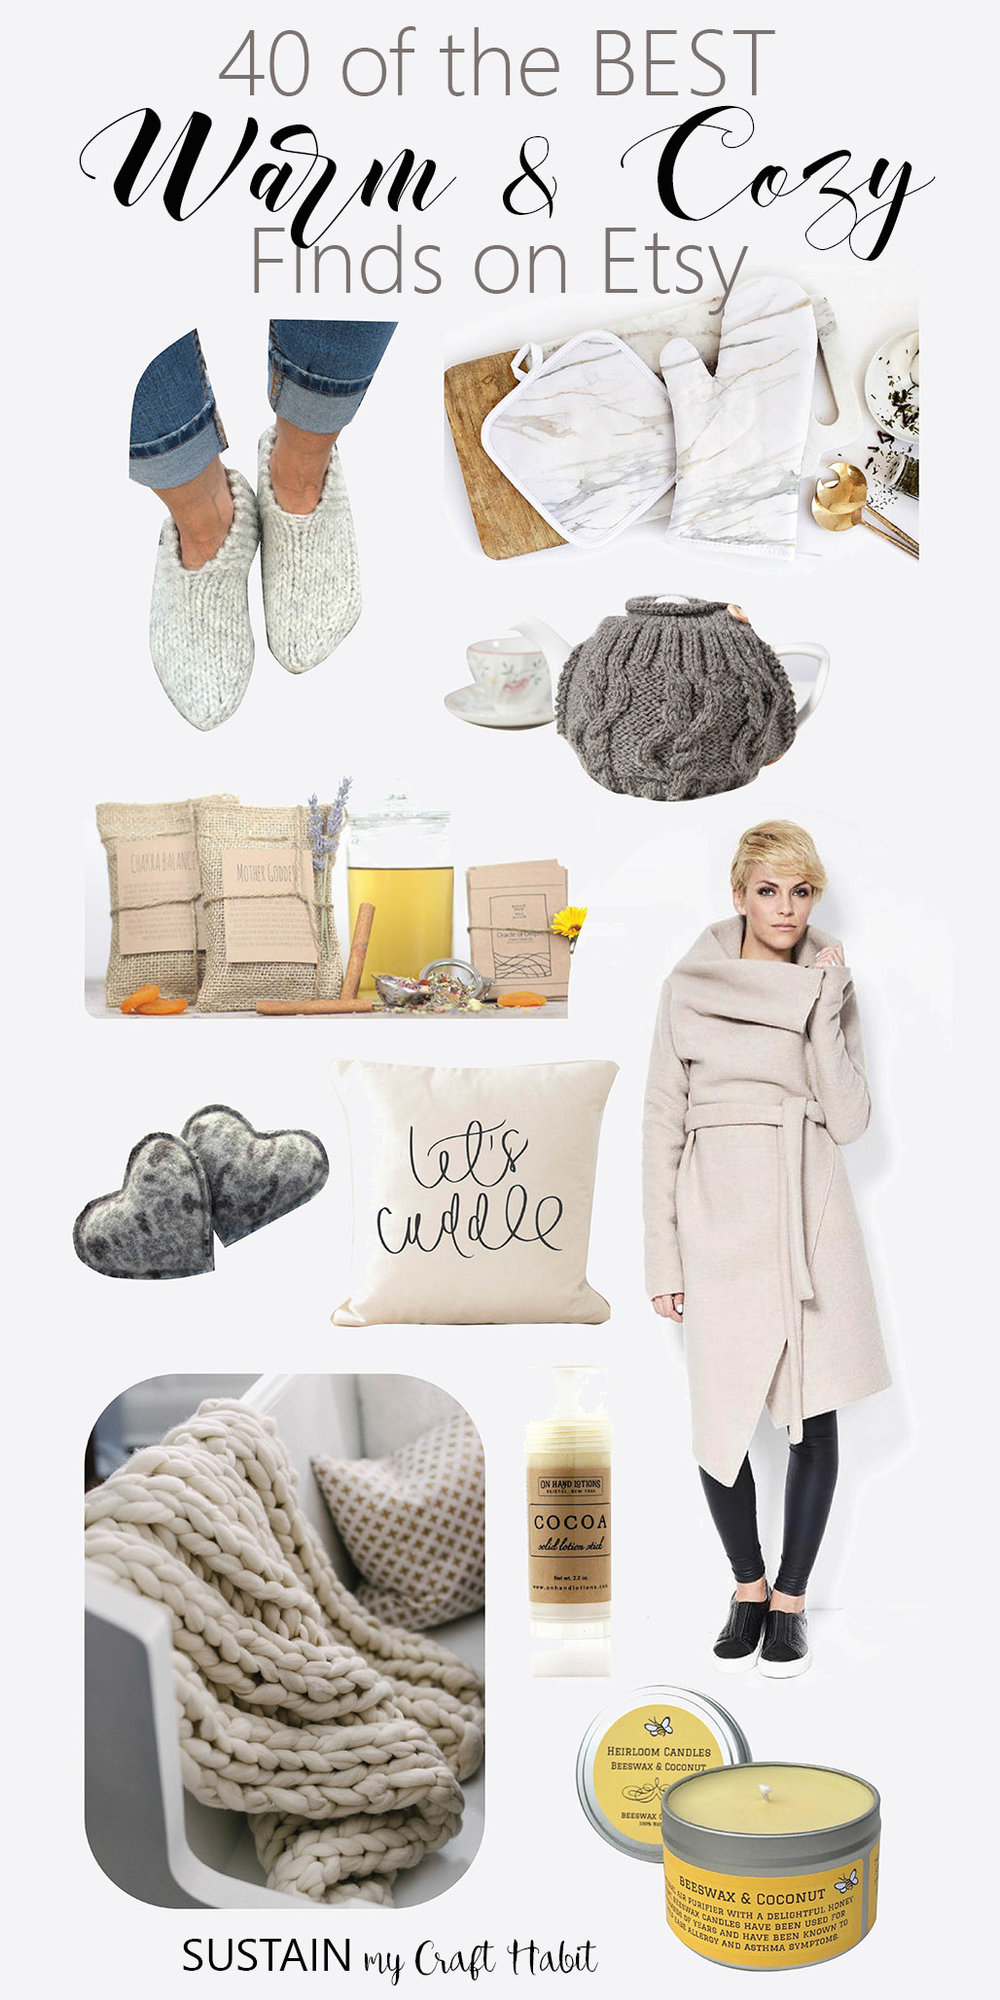 The best handmade and natural ideas from Etsy to keep you warm and cozy this winter.